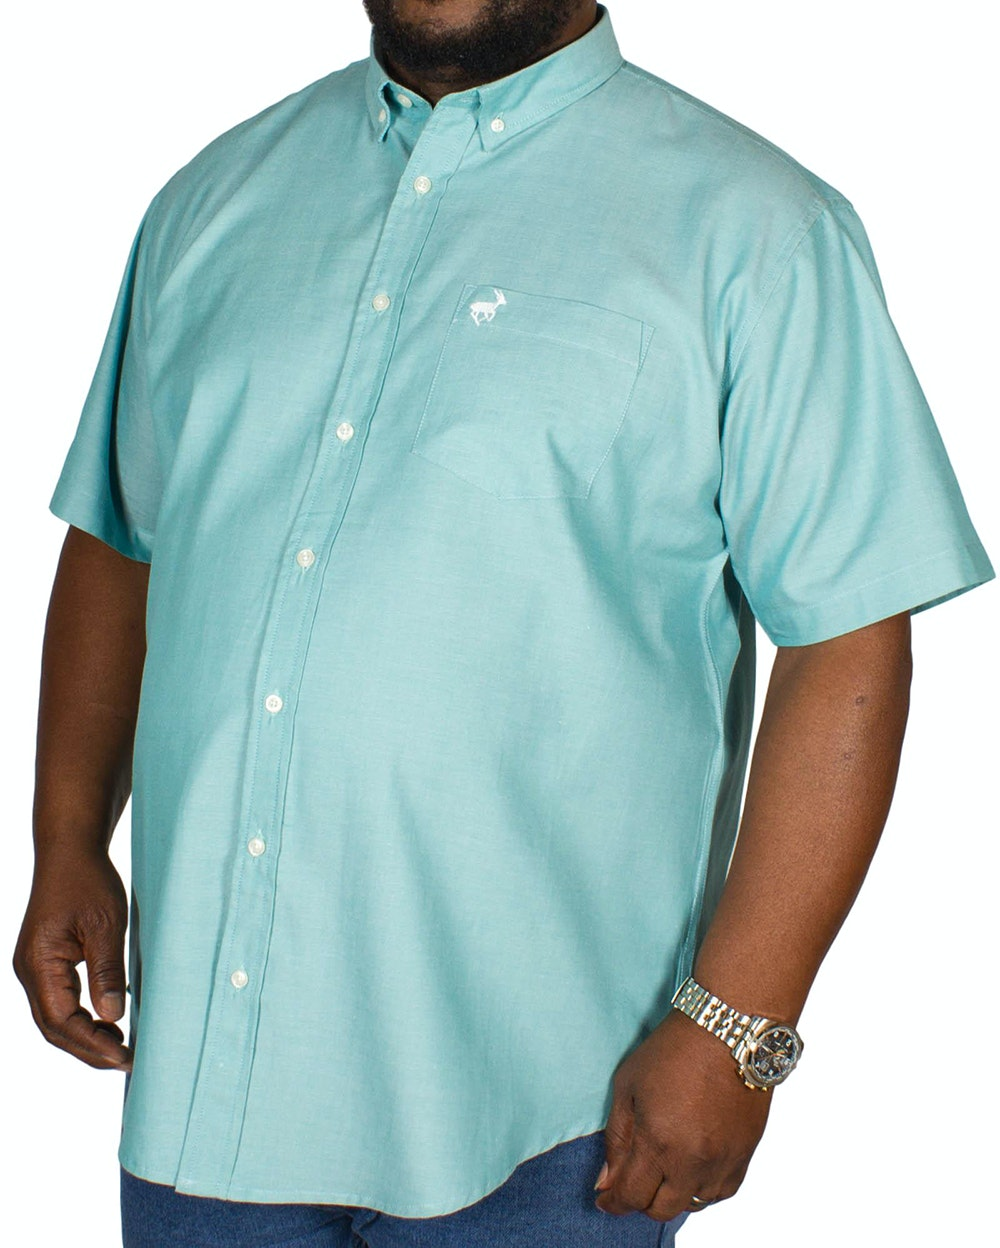 Bigdude Short Sleeve Oxford Shirt Teal